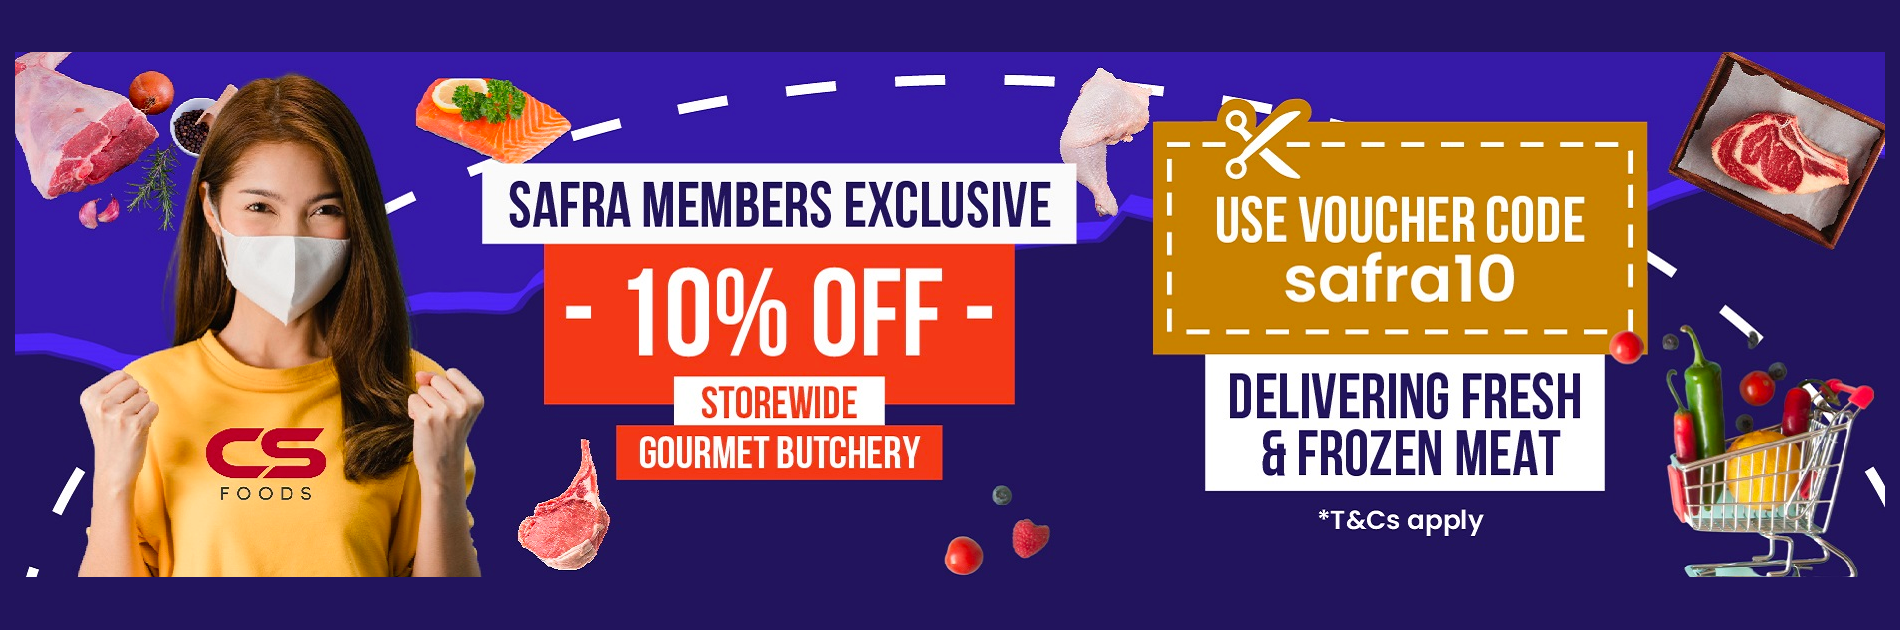 CheeSong Food Carousel Banner 1900 x 630px